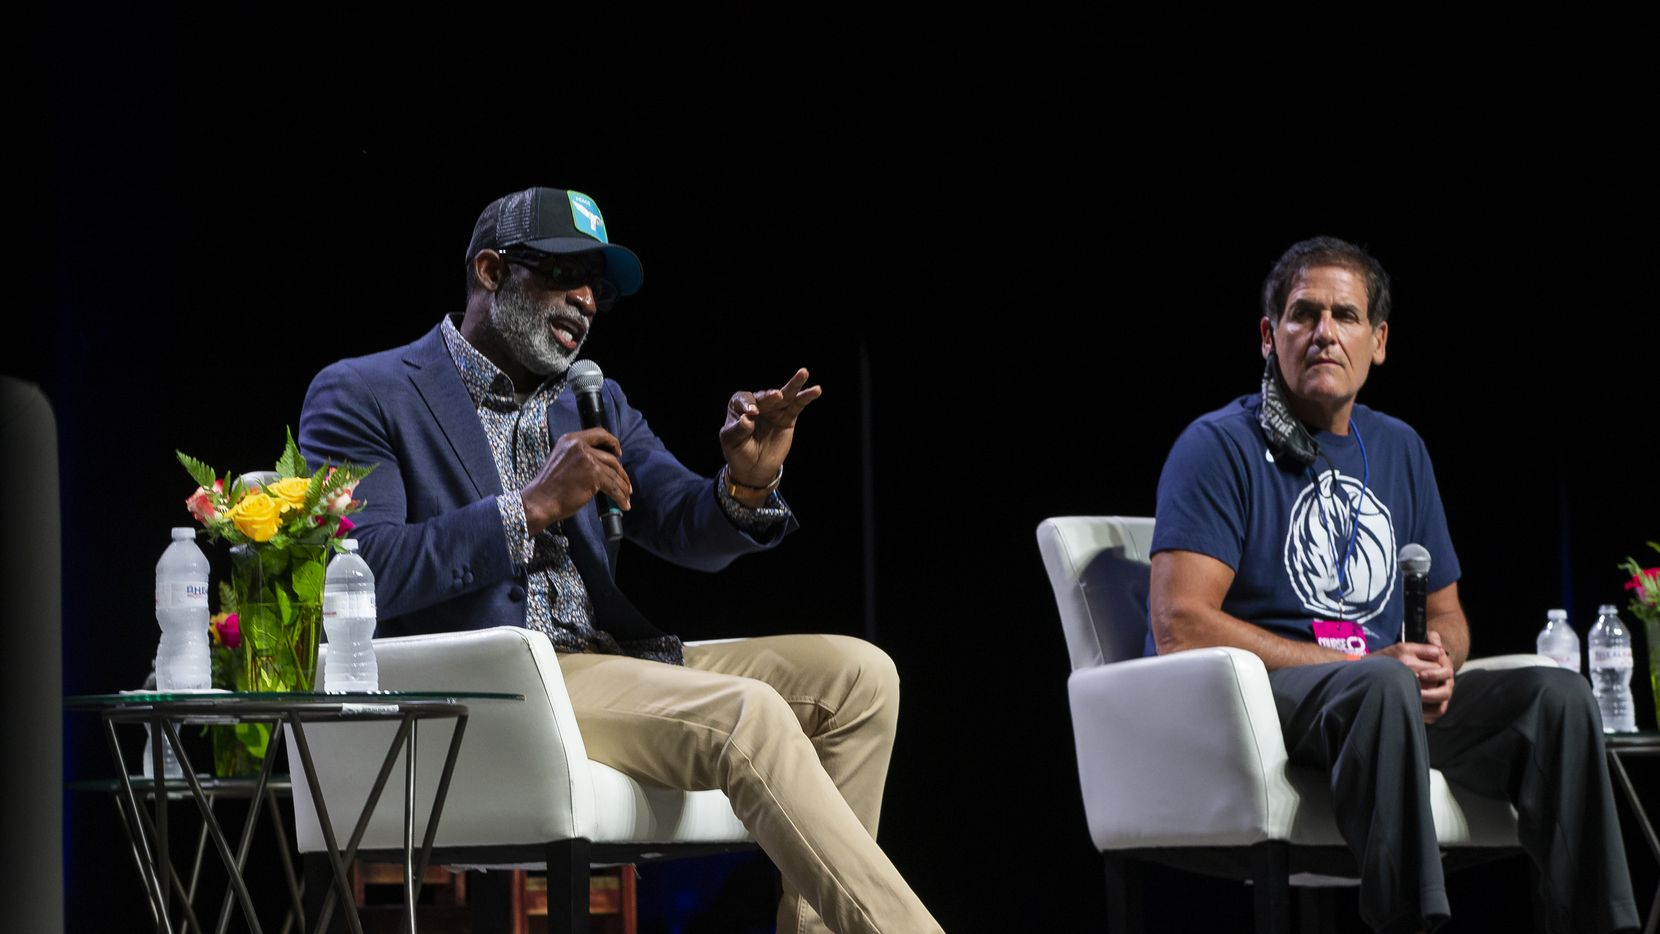 Deion Sanders and Mark Cuban speak at the Heal America panel at Gilley's in Dallas on Wednesday, June 24, 2020. The event held a conversation around racial relations in the United States in the wake of George Floyd's killing. (Juan Figueroa/The Dallas Morning News)